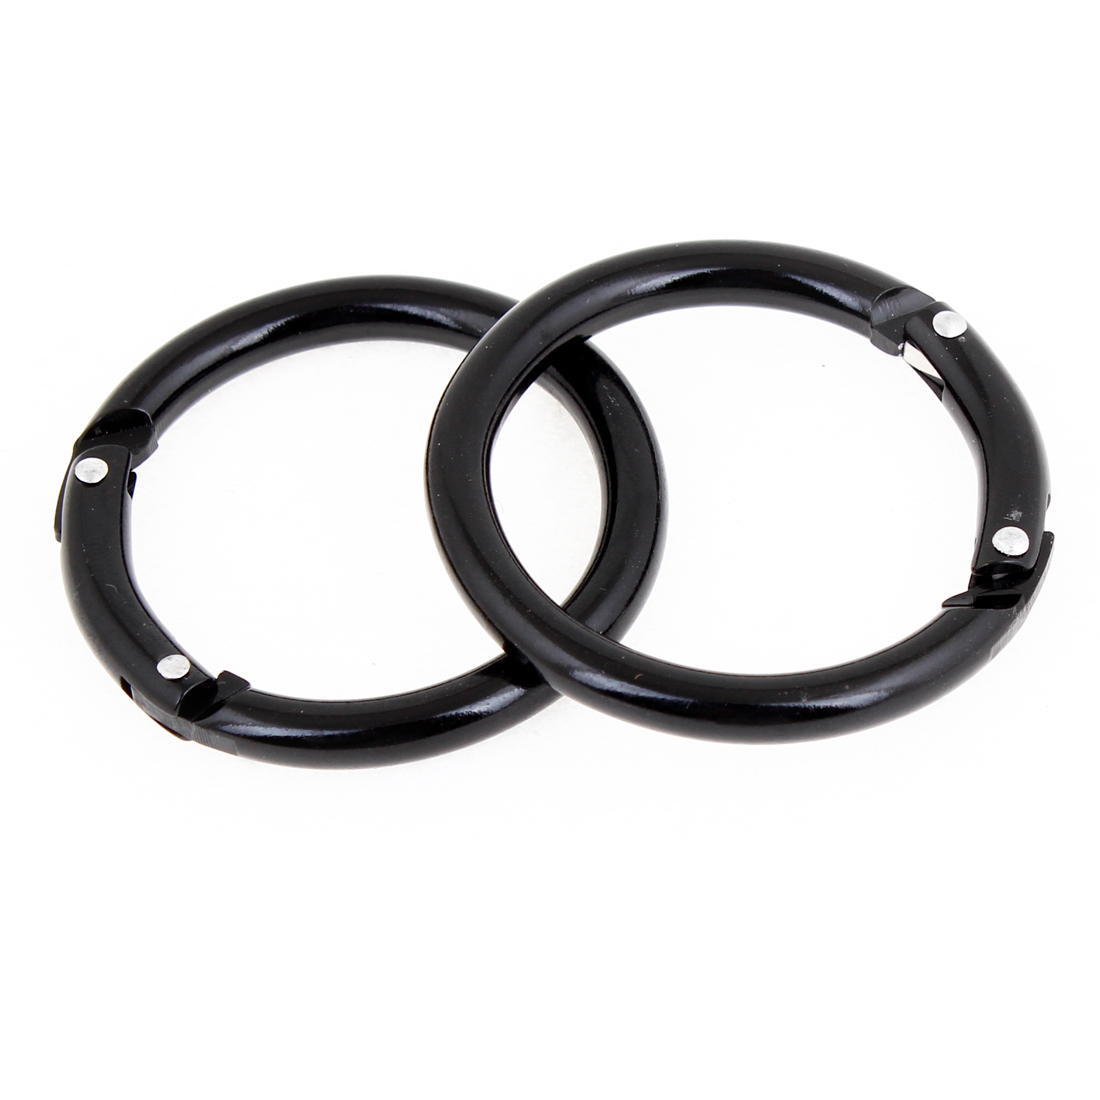 2 Pcs Black Metal Spring Loaded Gate Key Holder Keyring